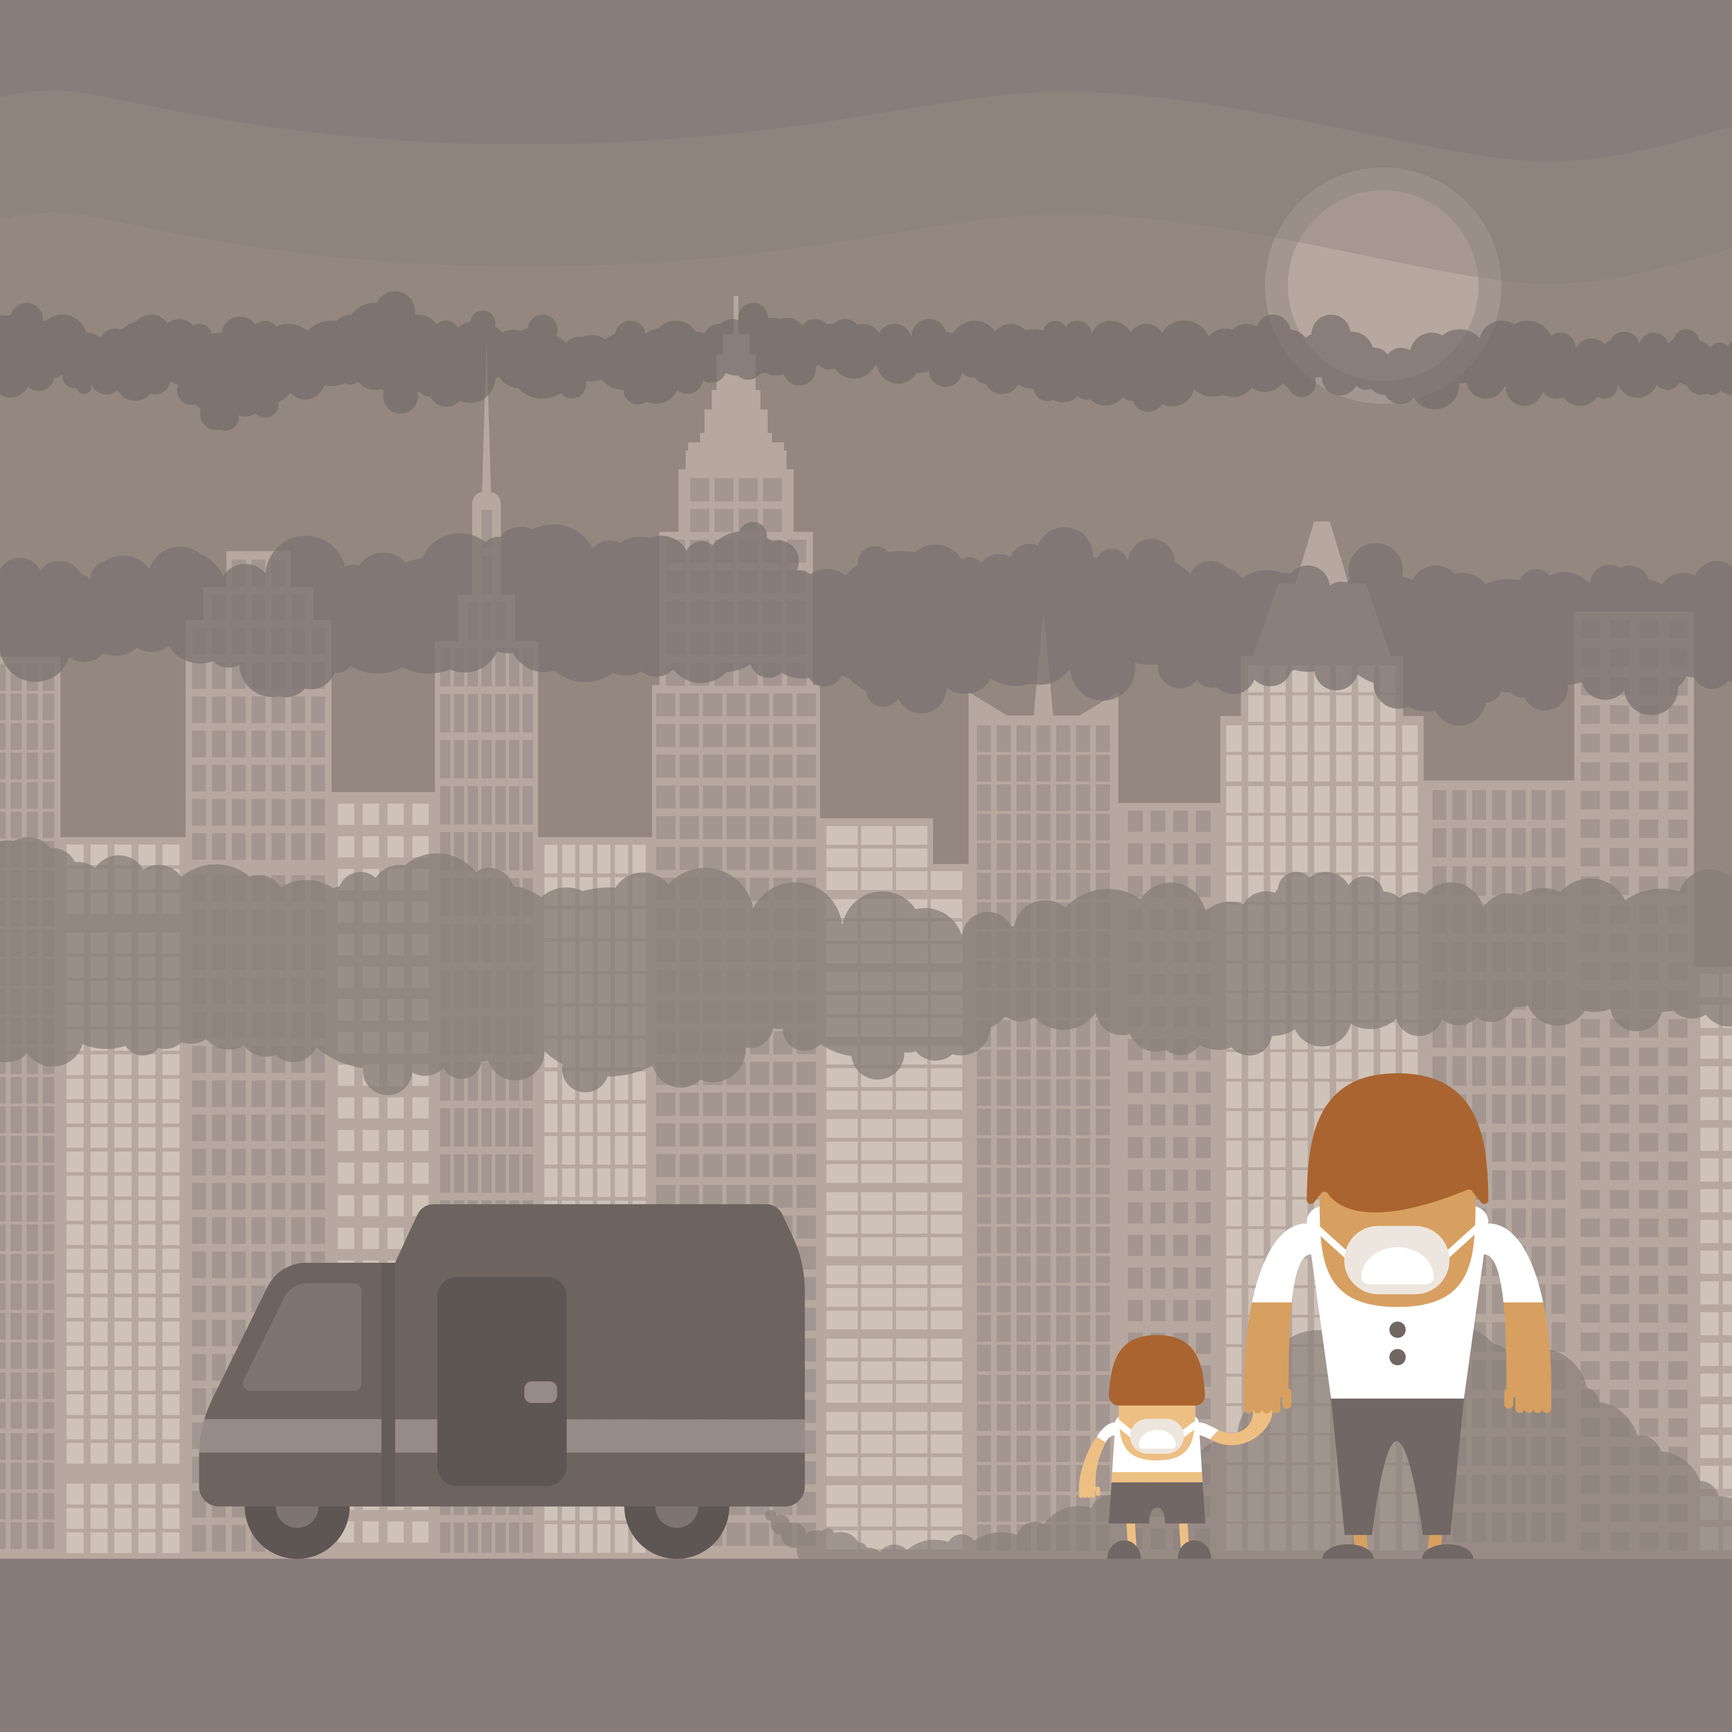 A cartoon of a father and son walking through a smoggy city (Thinkstock/PA)